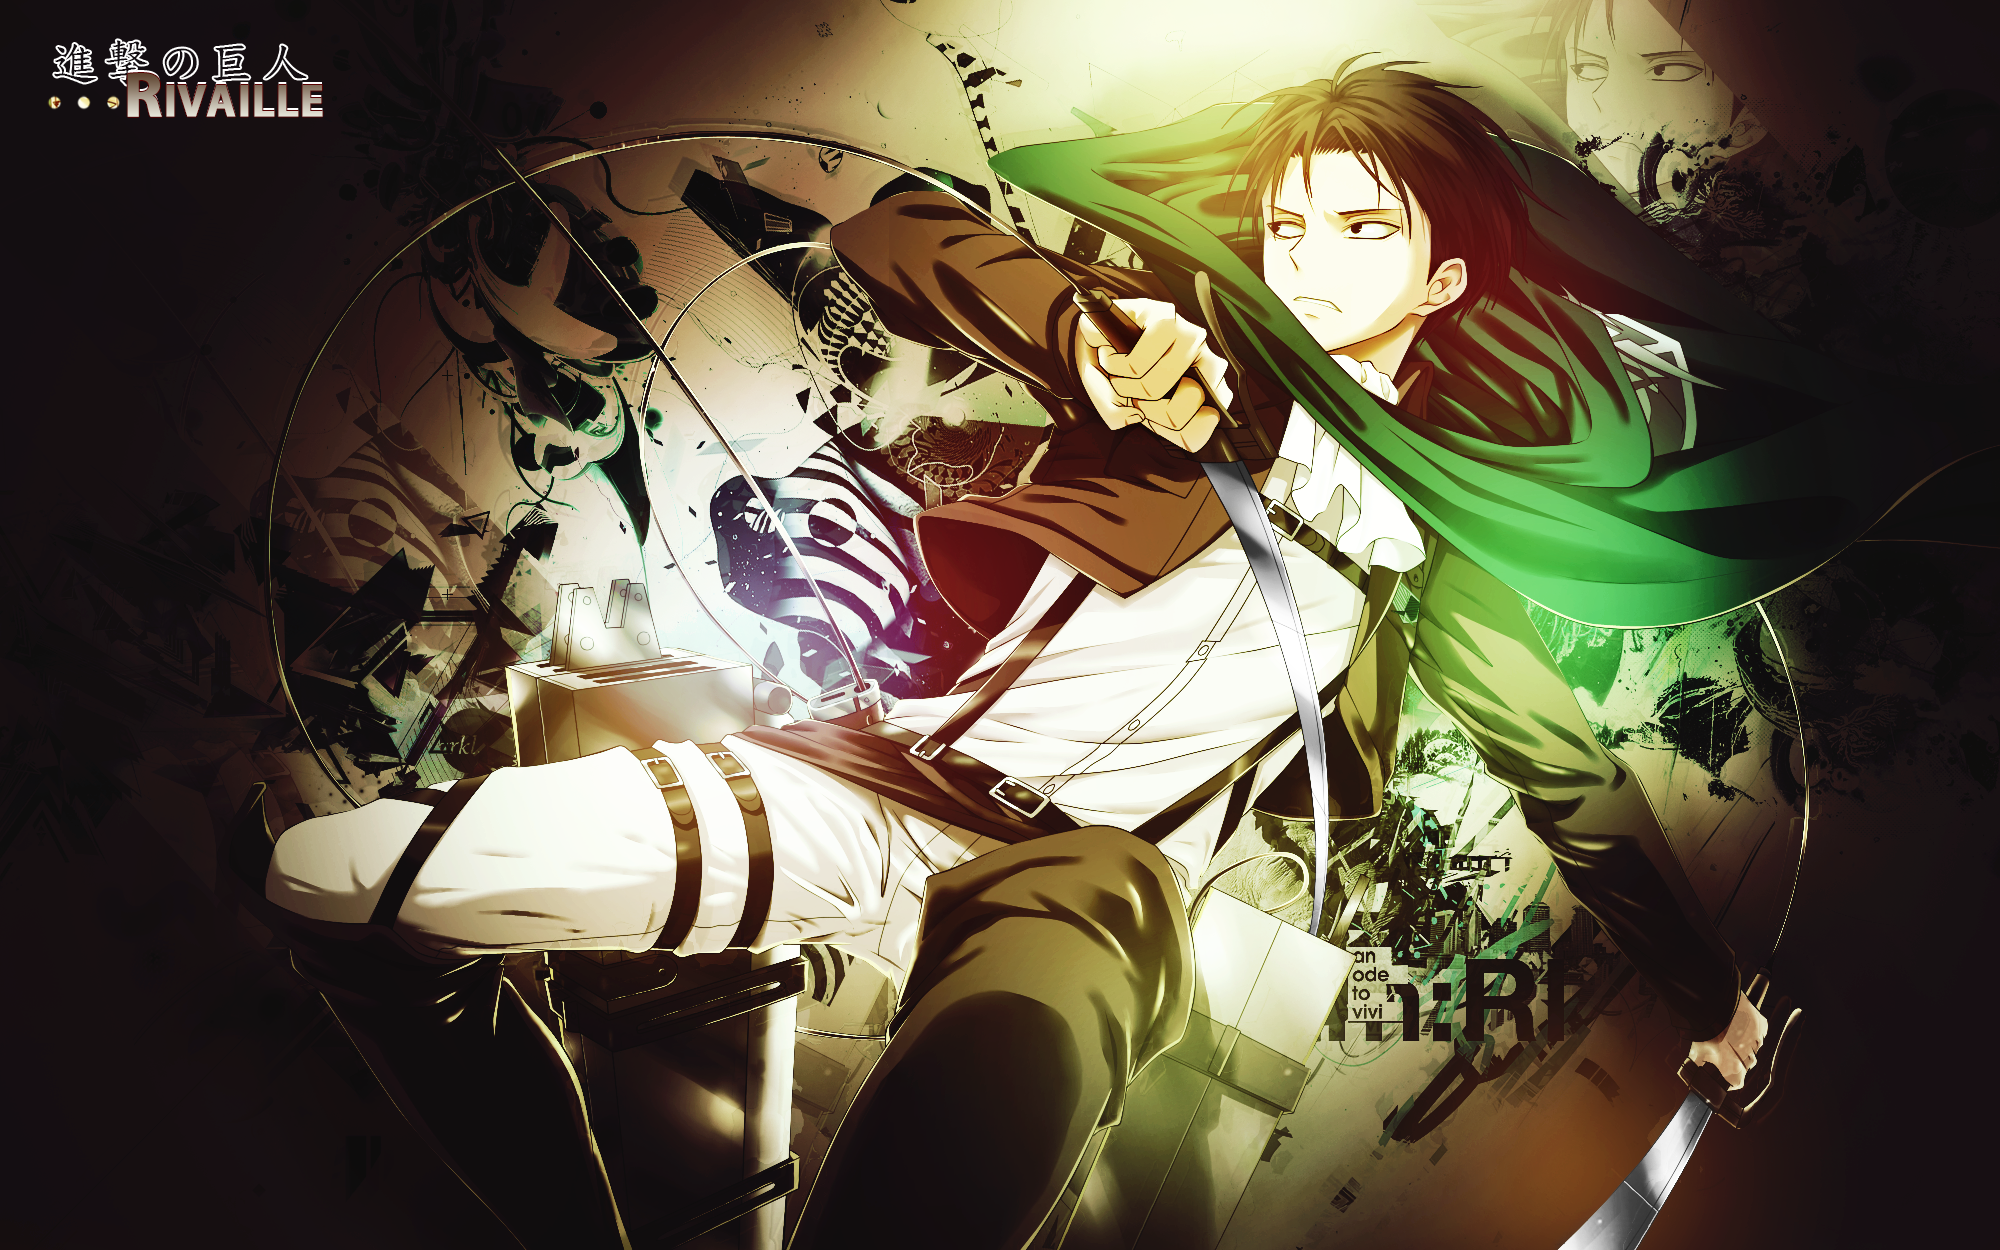 Wallpaper Shingeki No Kyojin RivailleLevi by Nagamii Chan on 2000x1250